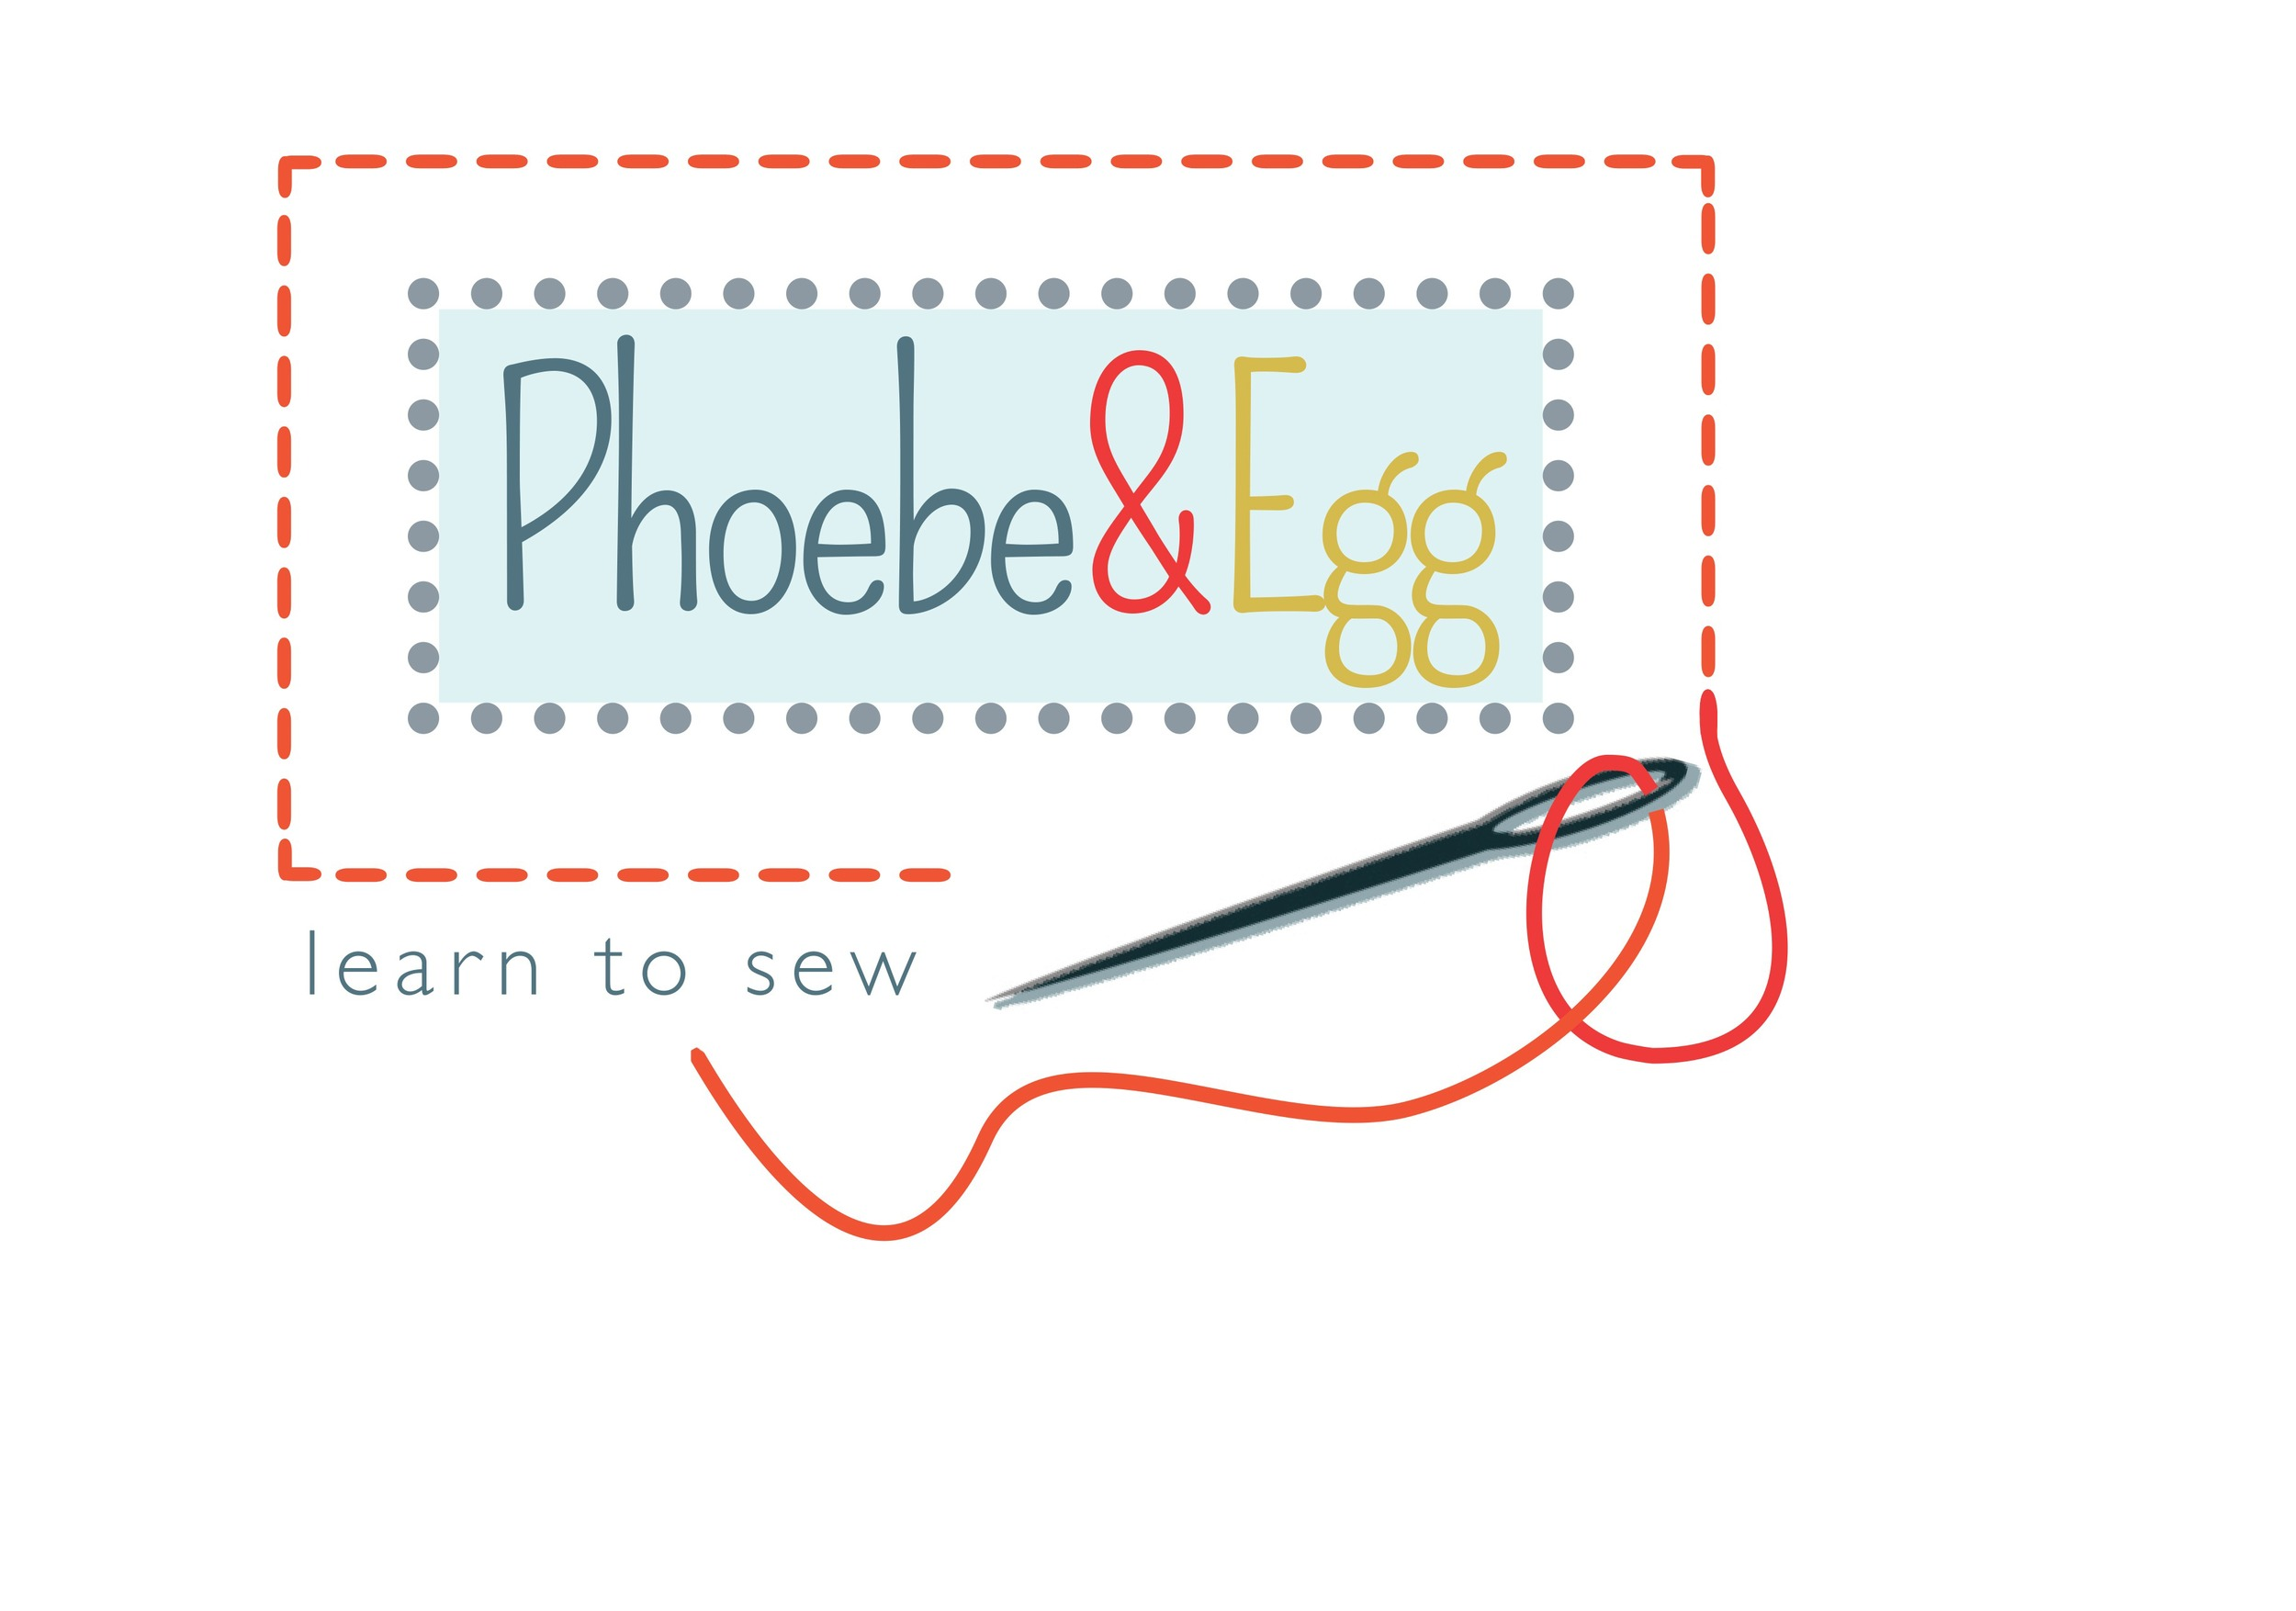 The beginning of a sewing series for Phoebe (and maybe Egg)